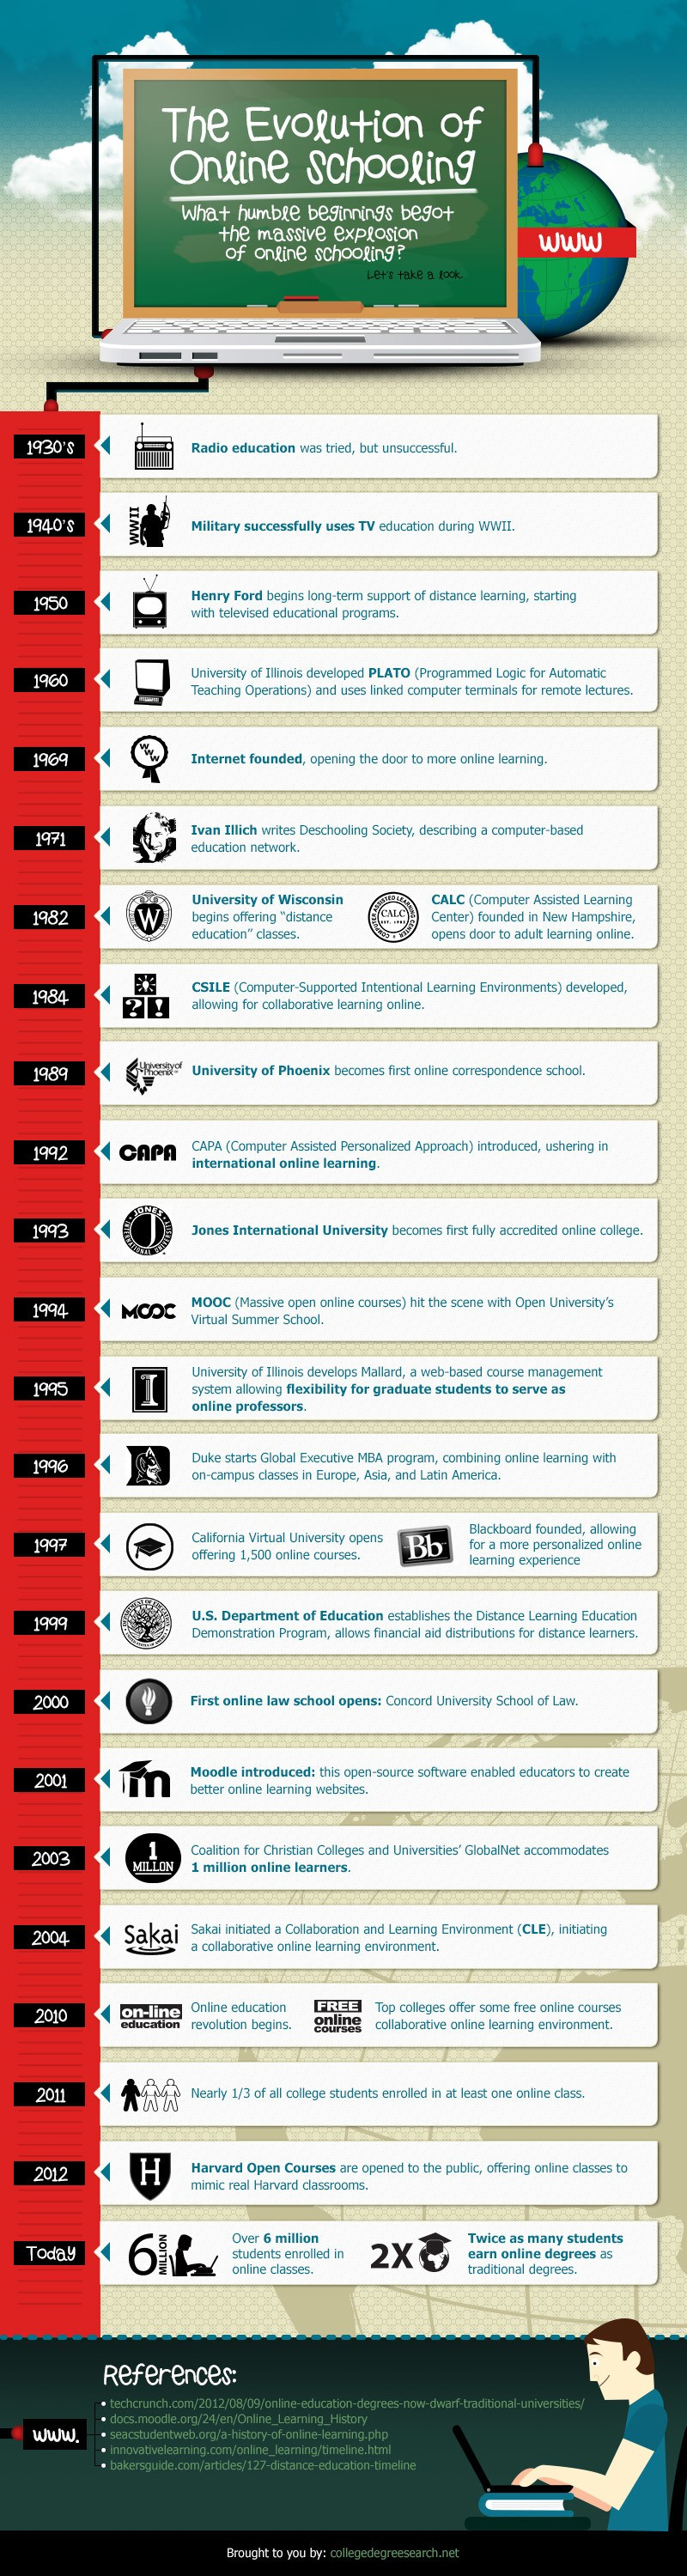 The Evolution of Online Schooling Infographic